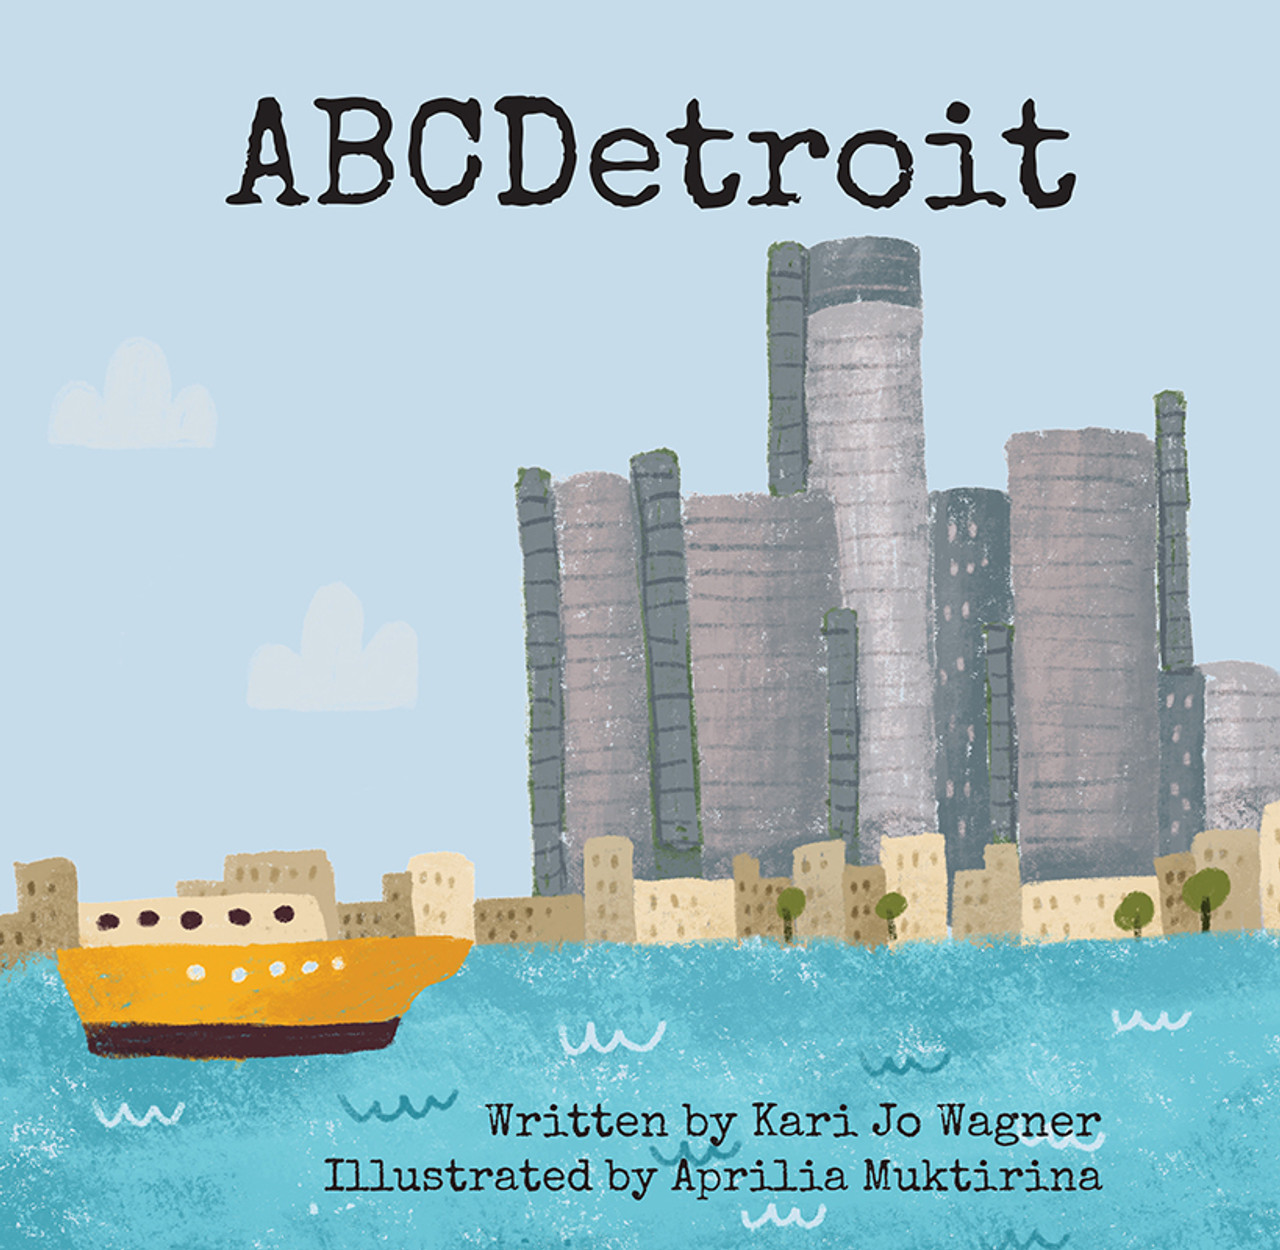 ABCDetroit